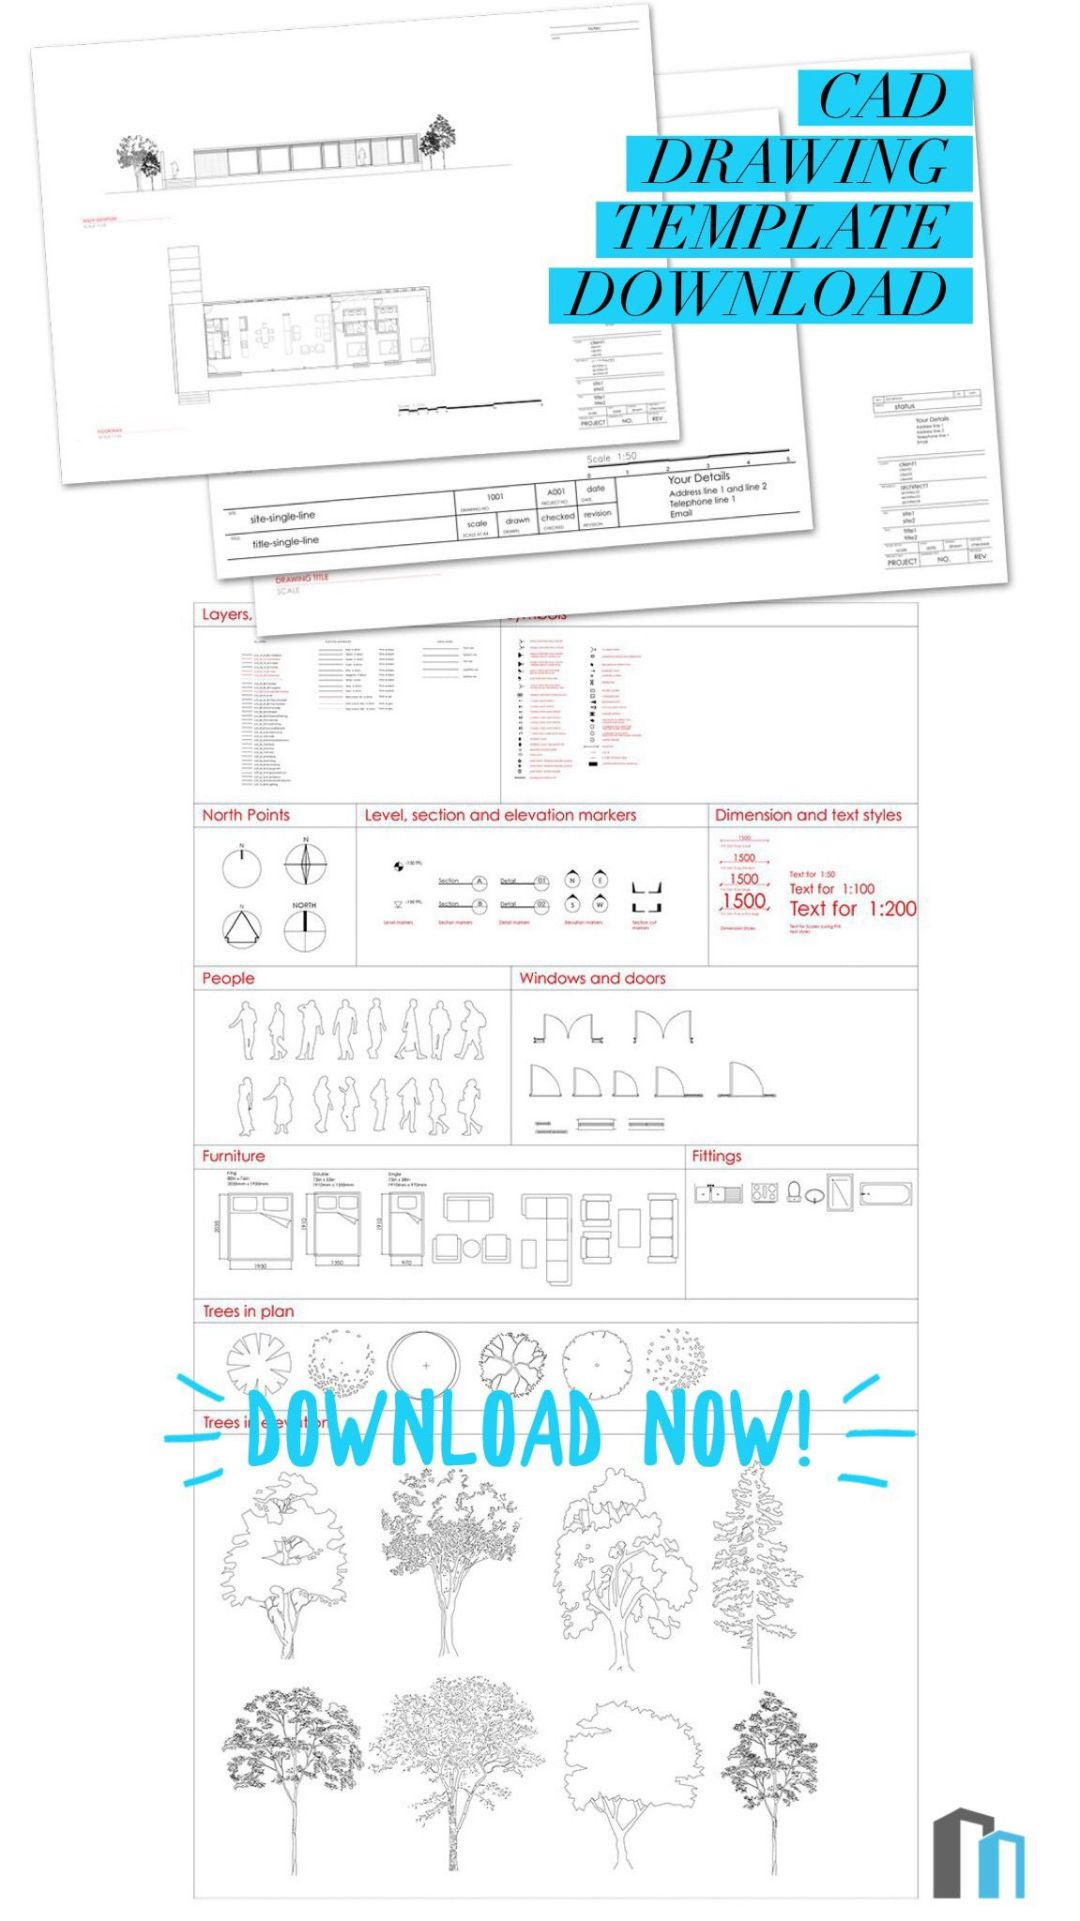 CAD Drawing Template Download - First In Architecture